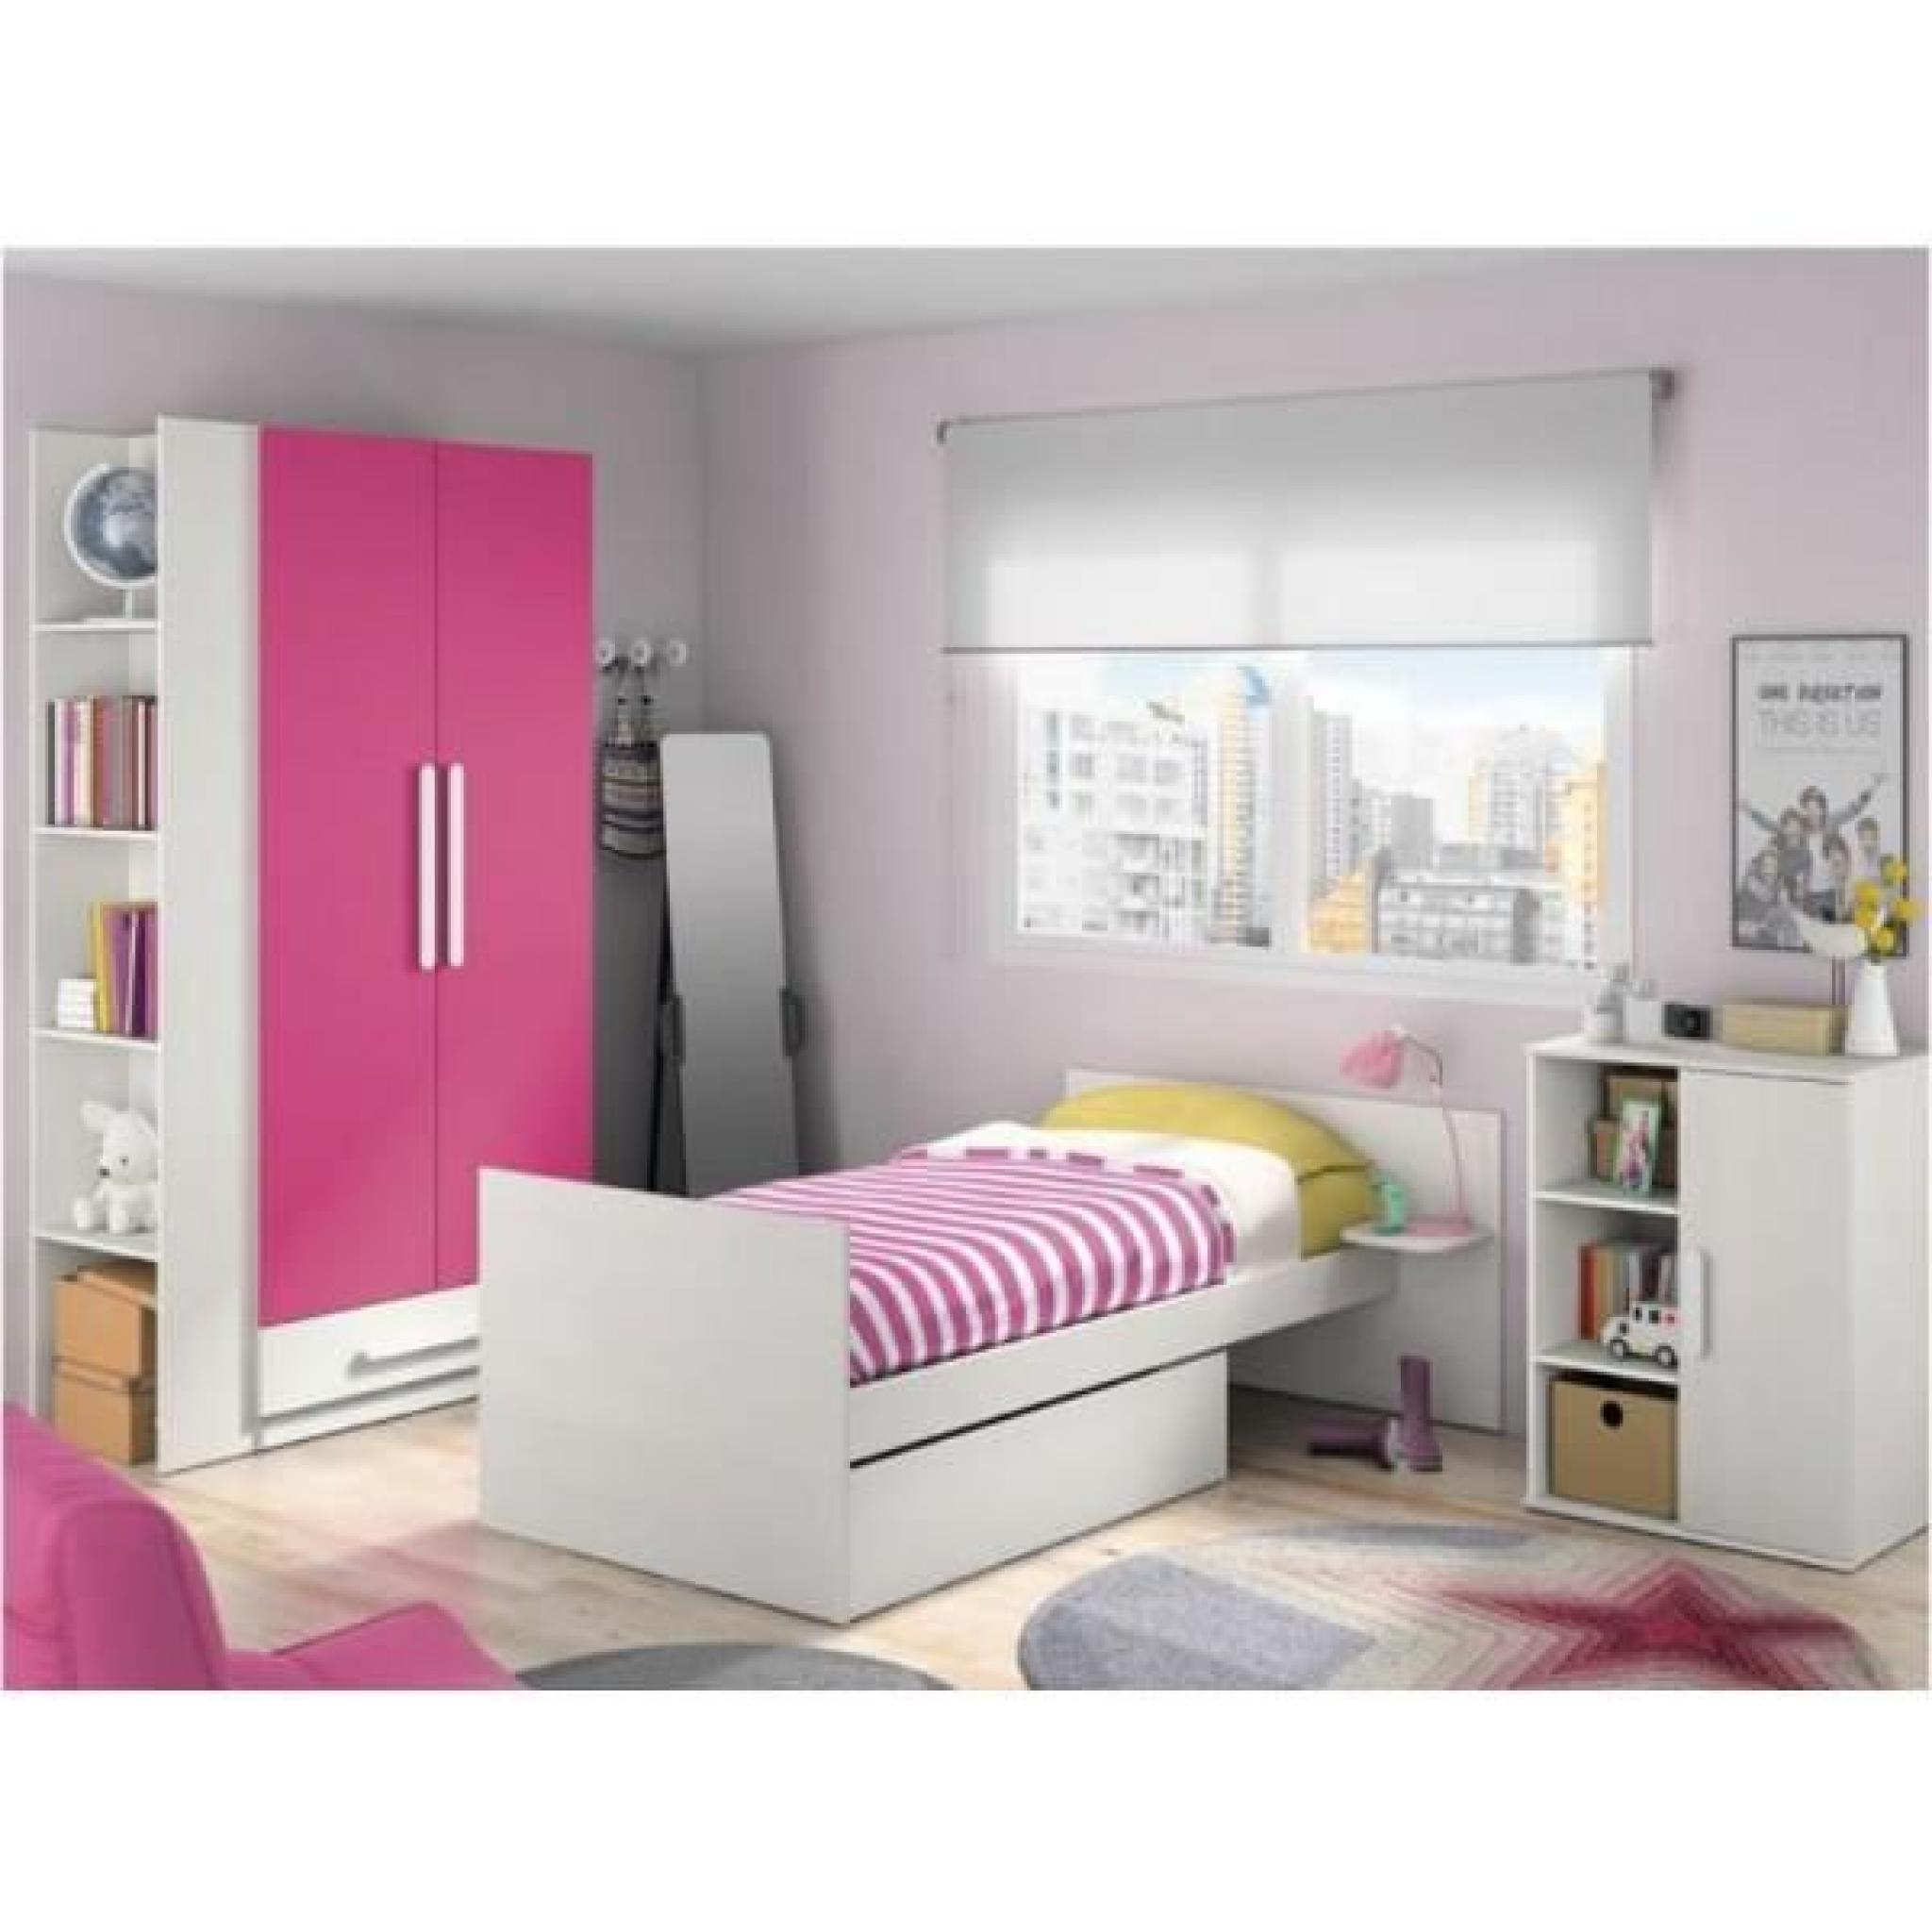 chambre fille complete pas cher excellent bebe murale chambre applique with chambre fille. Black Bedroom Furniture Sets. Home Design Ideas